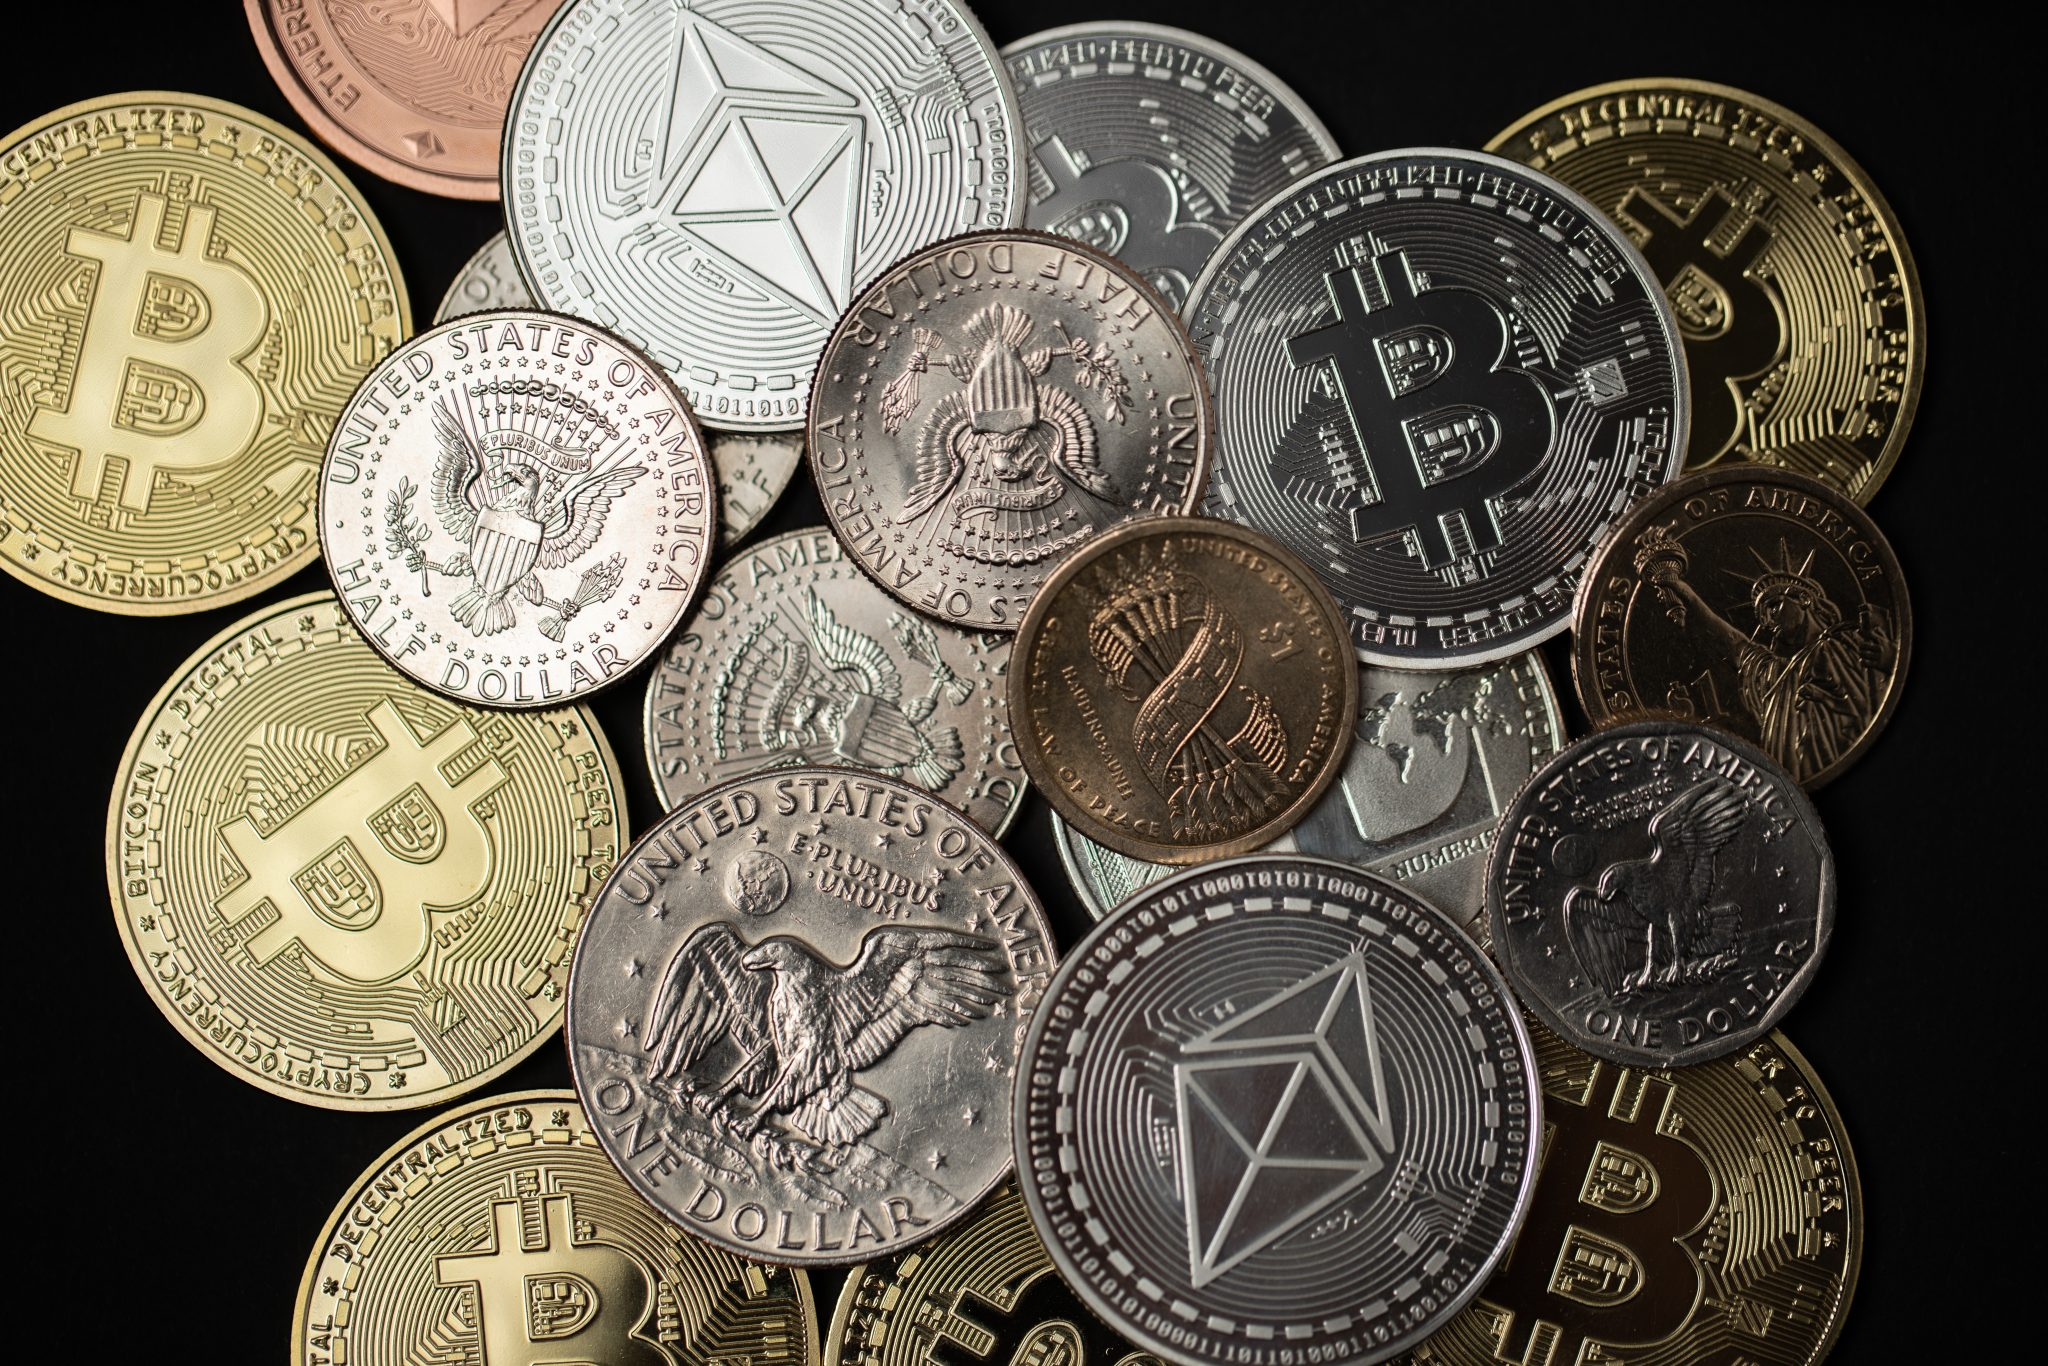 One dollar coin on half dollar and gold Bitcoin coins. Digital crypto currency Bitcoin, Ethereum and Litecoin with USD